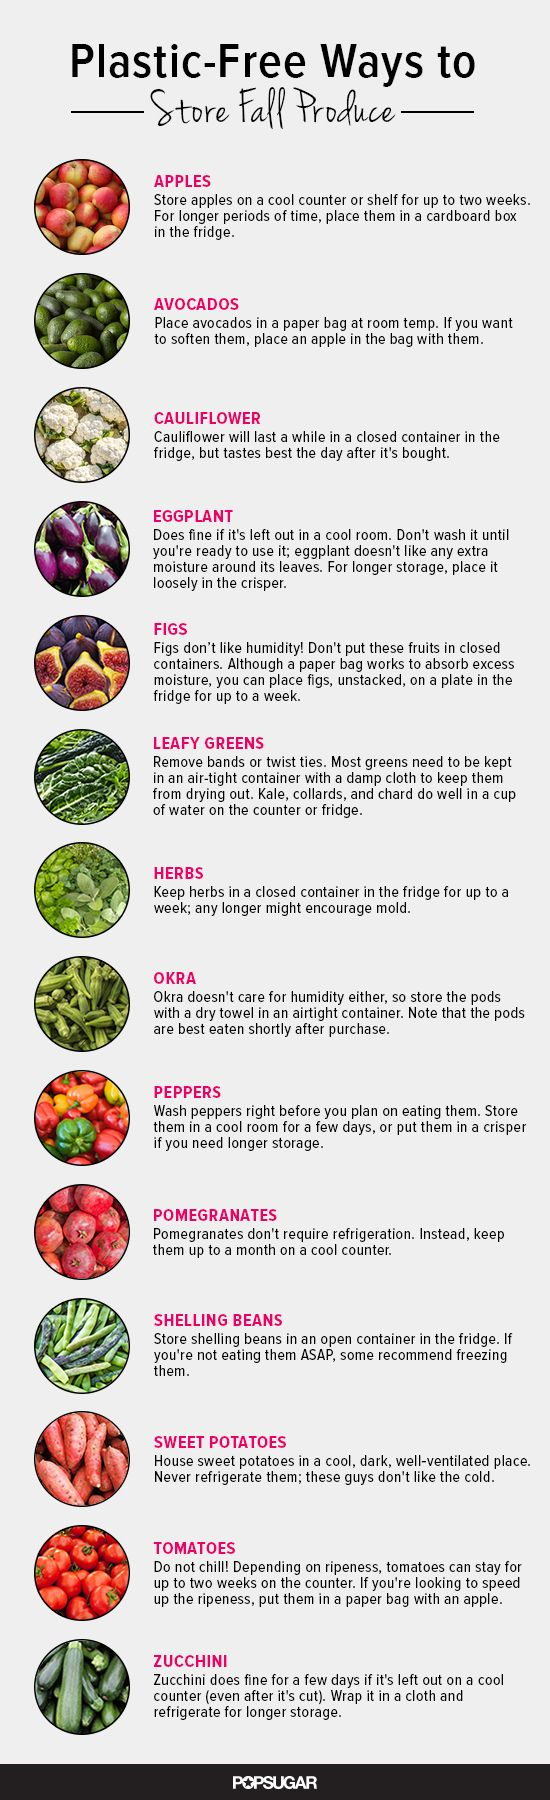 Pin of the week - 28/11/13 - Good eco friendly ways to keep yummy veggies fresh without using plastic